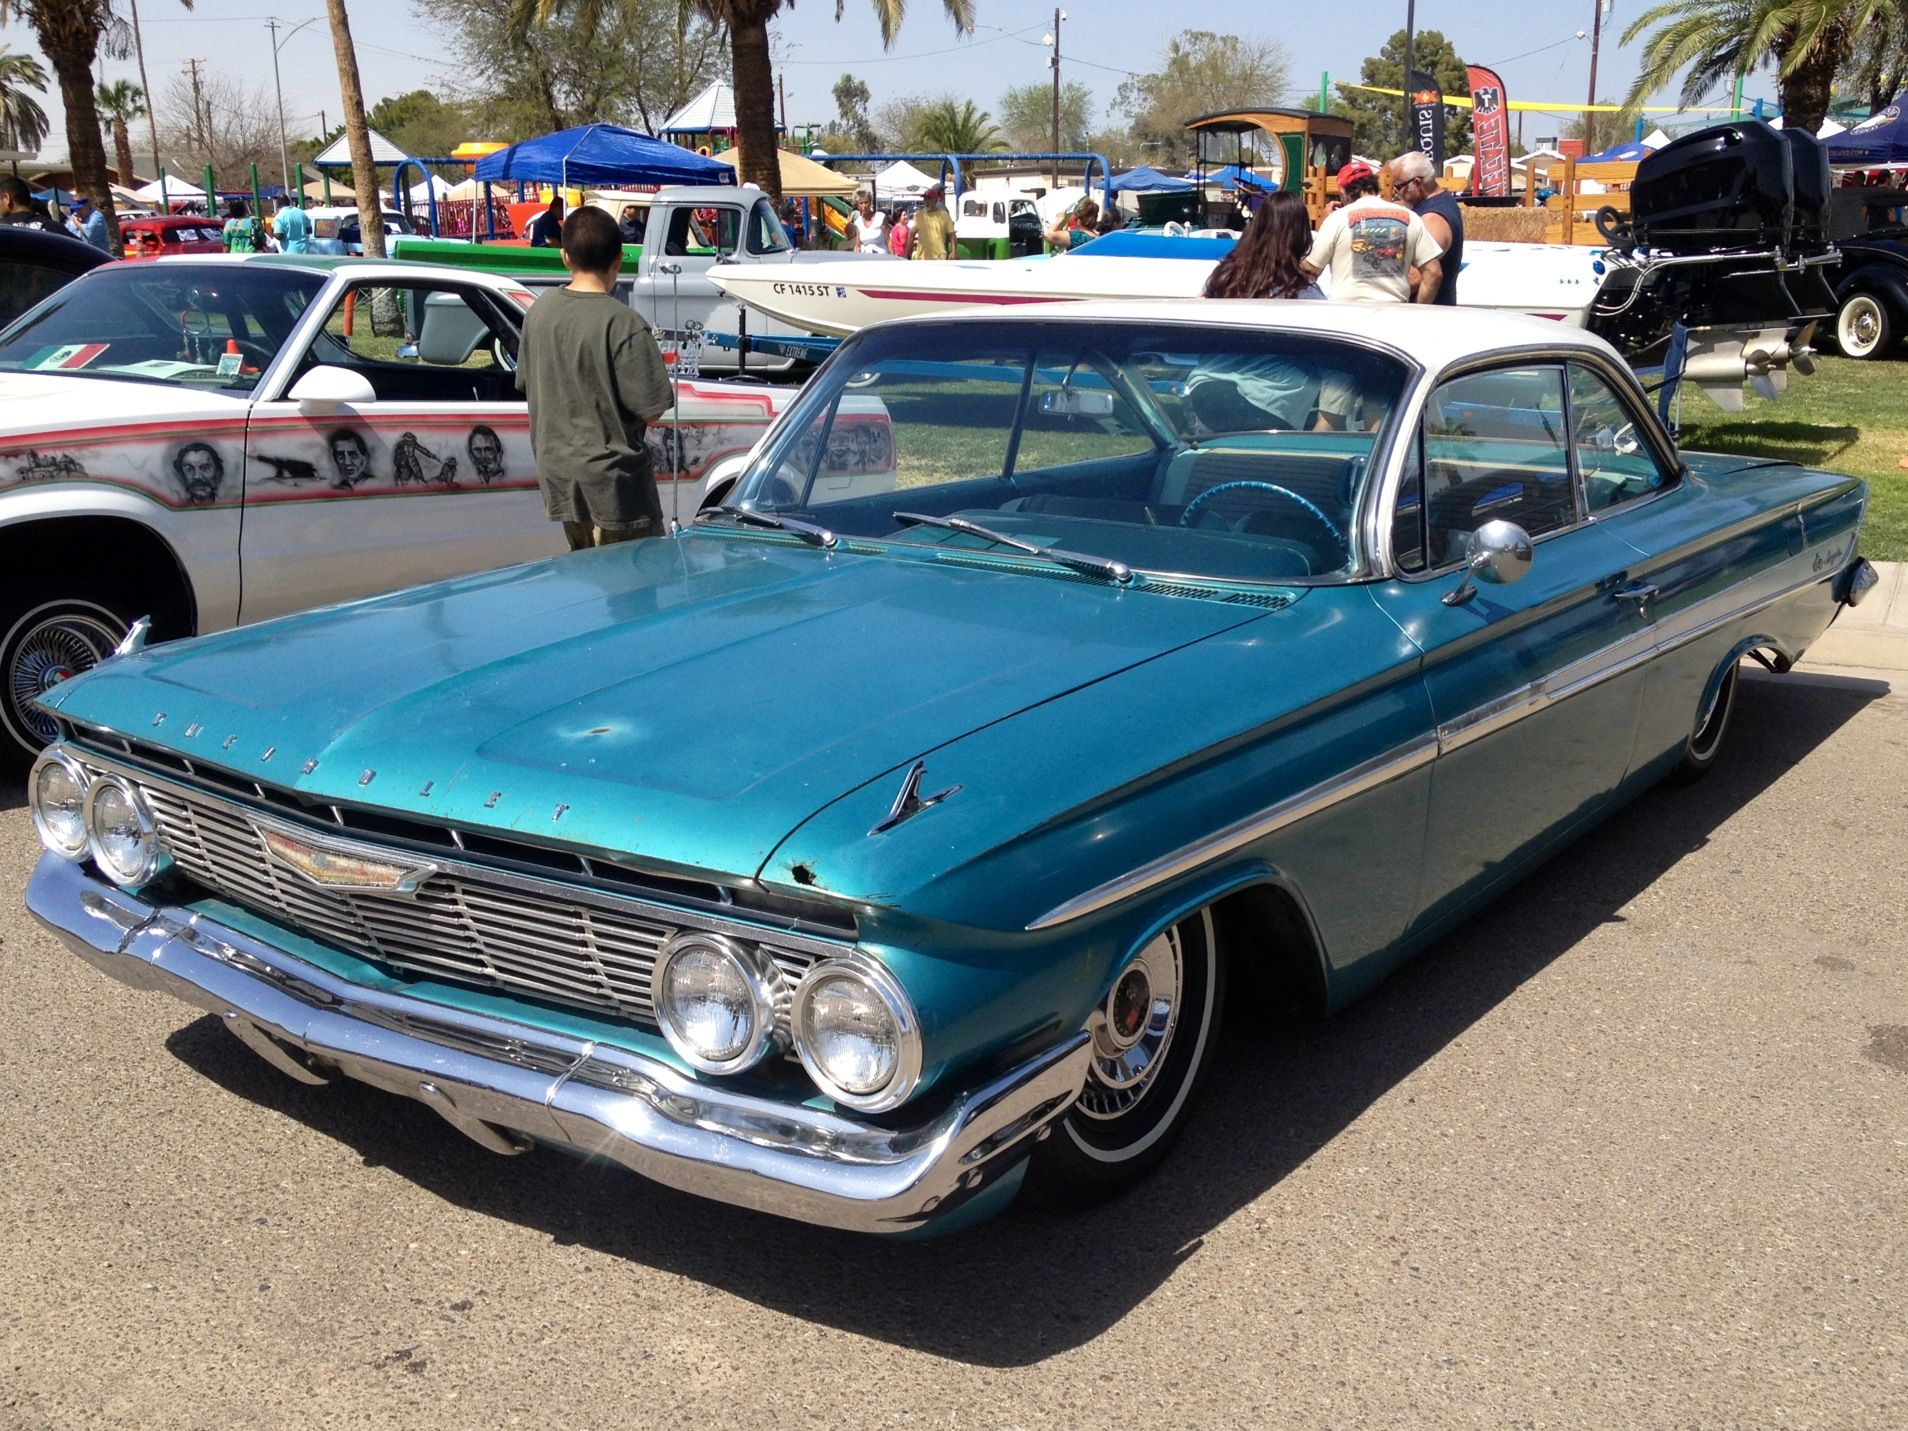 73 Impala Projects For Sale | Autos Post